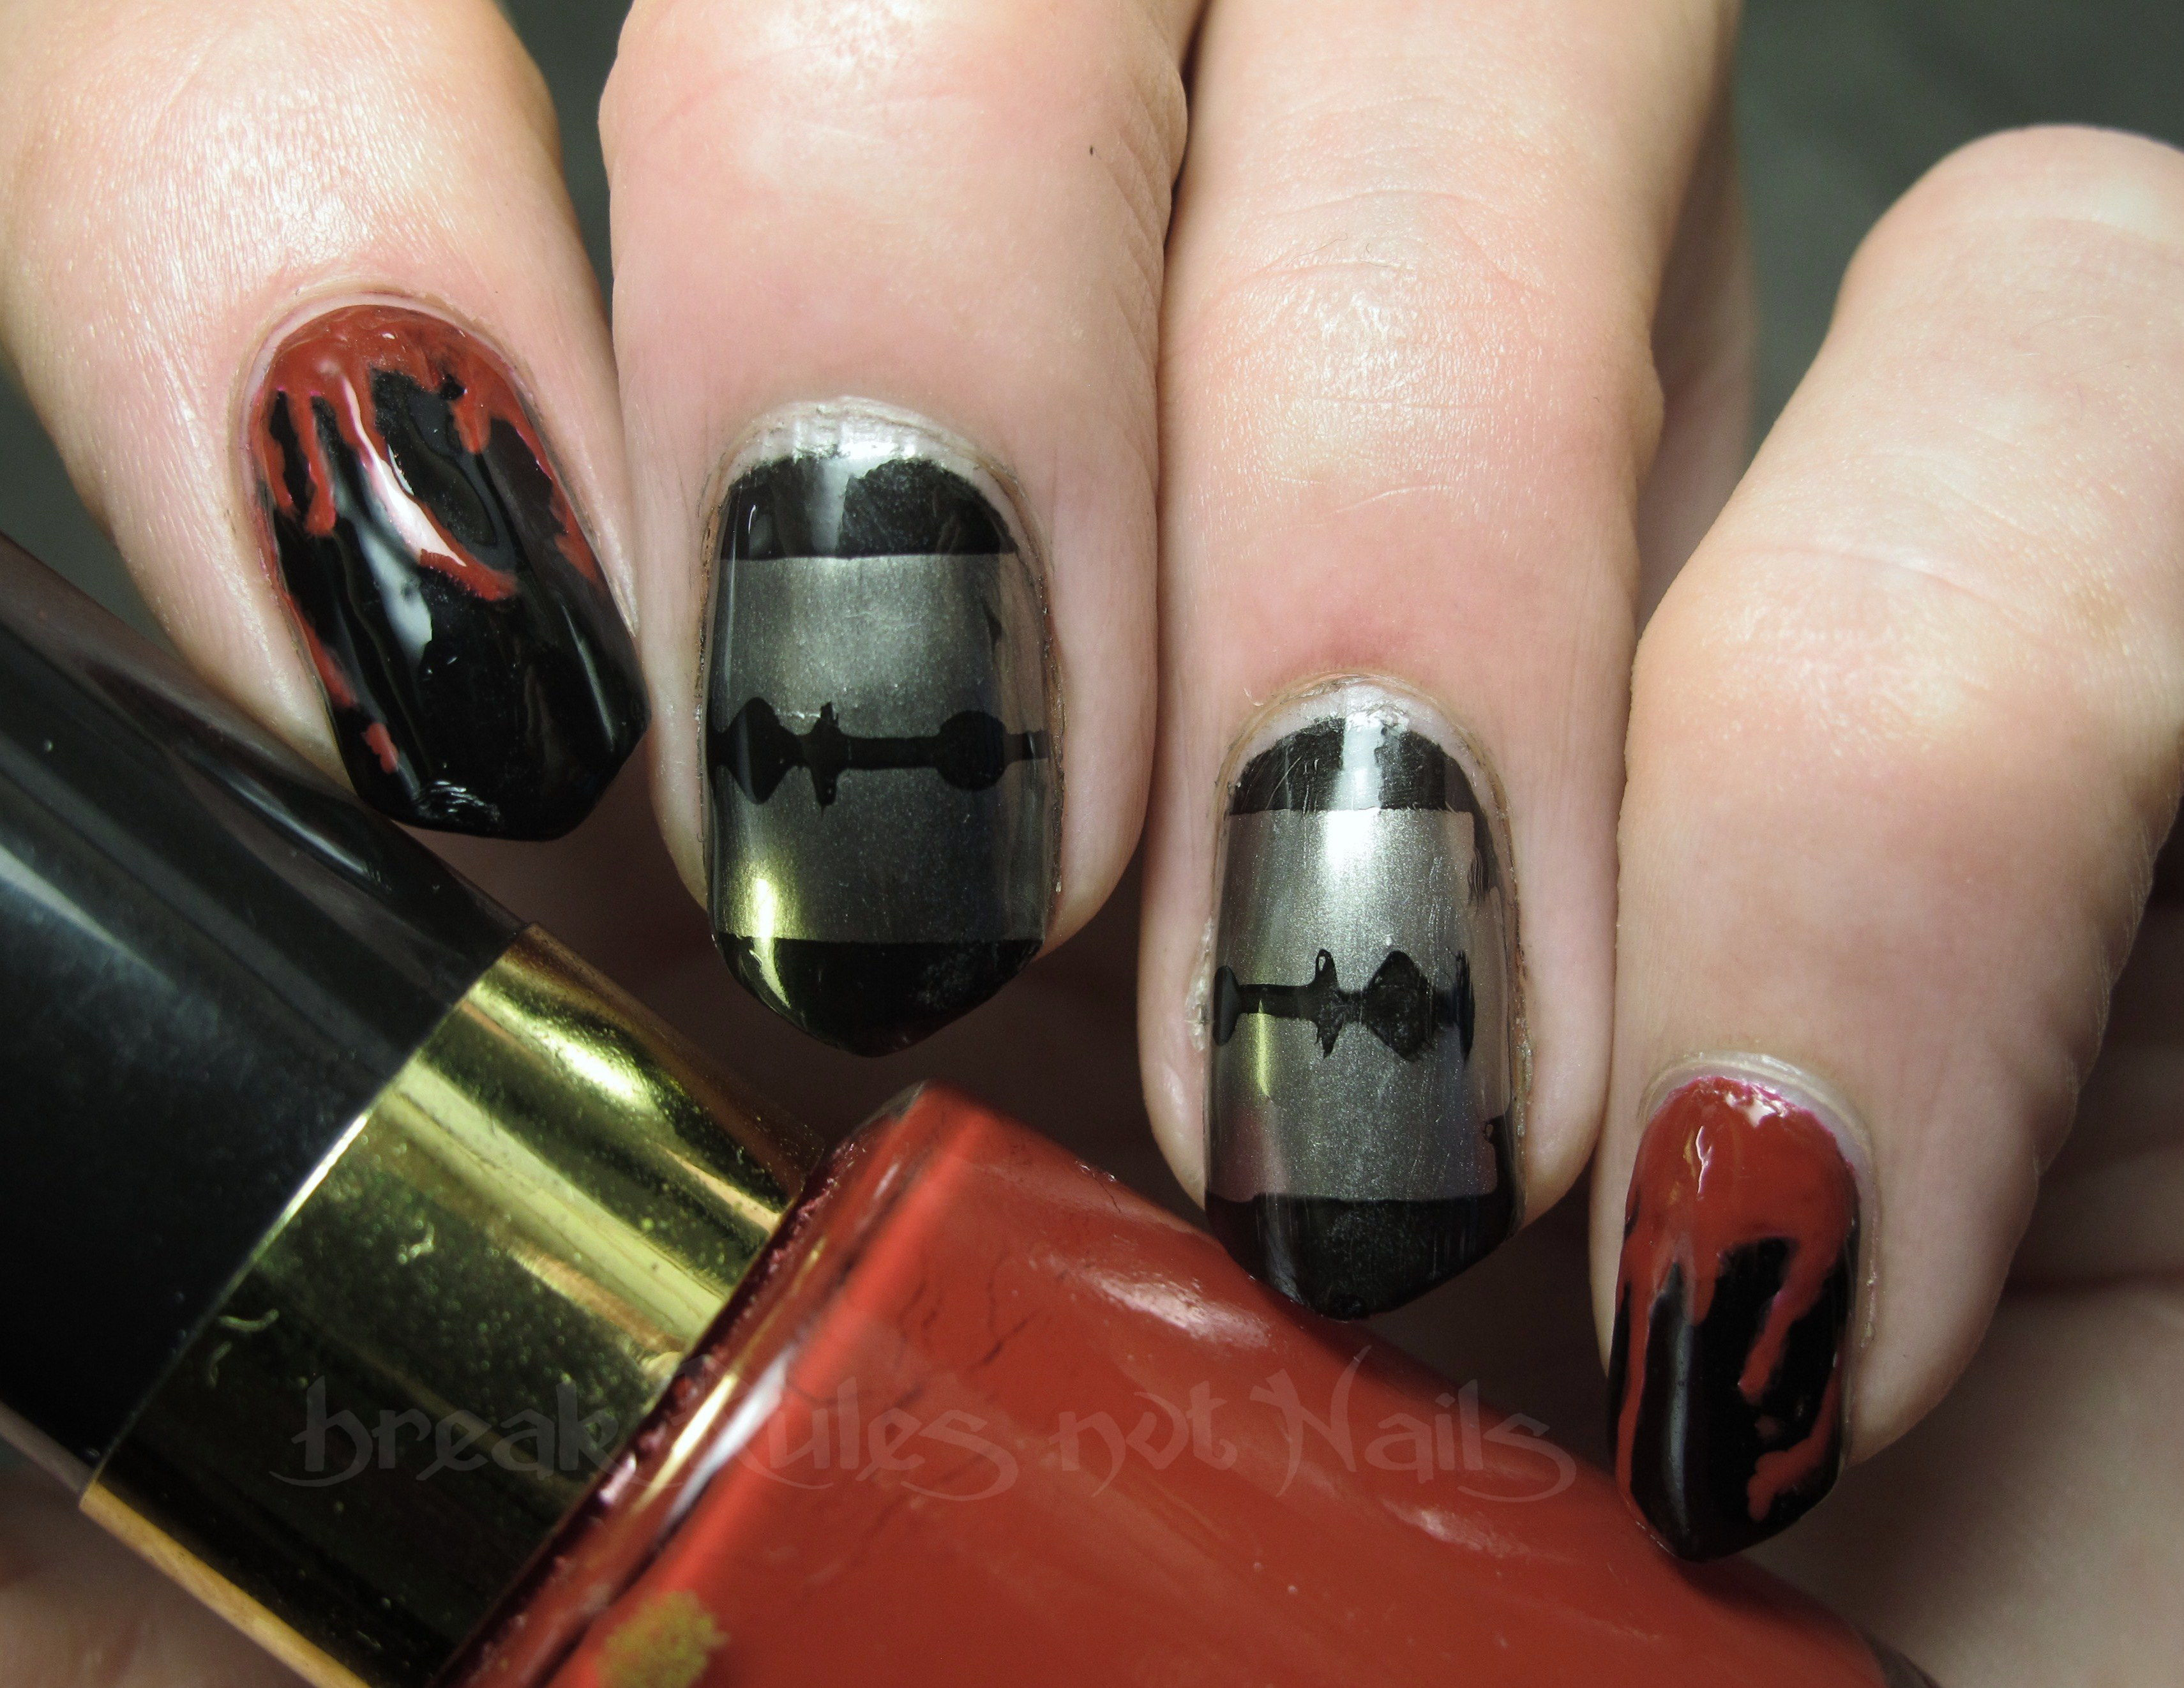 Blood dripping nail art break rules not nails razor and blood prinsesfo Gallery